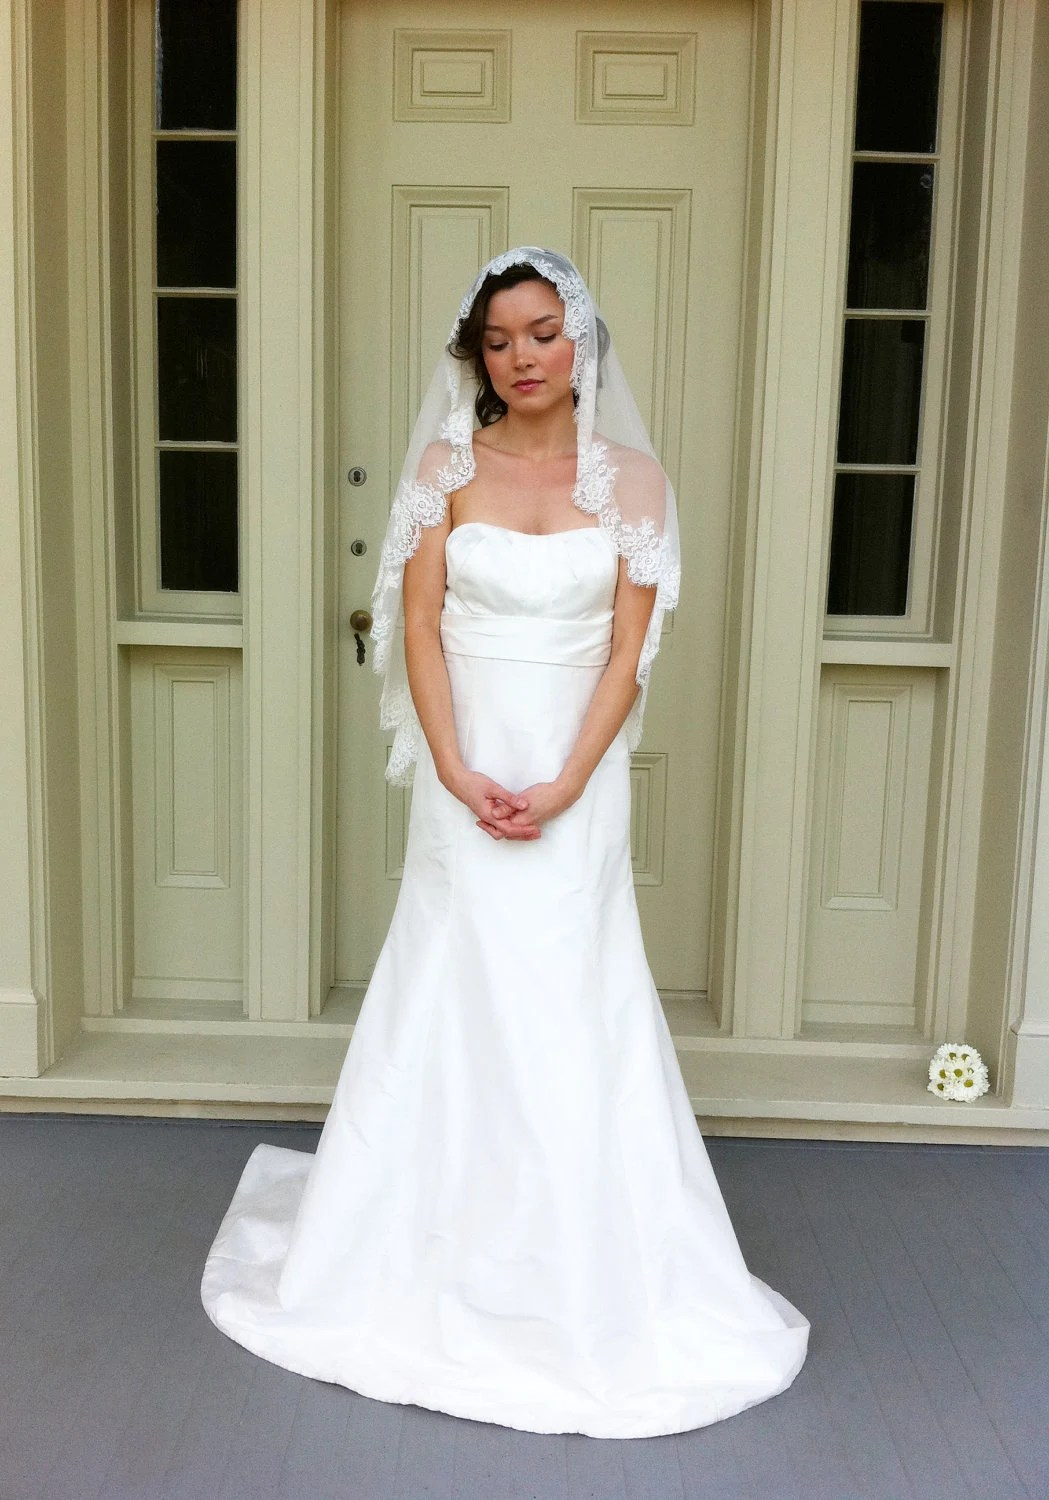 Catalina-chantilly rose lace trimmed mantilla veil